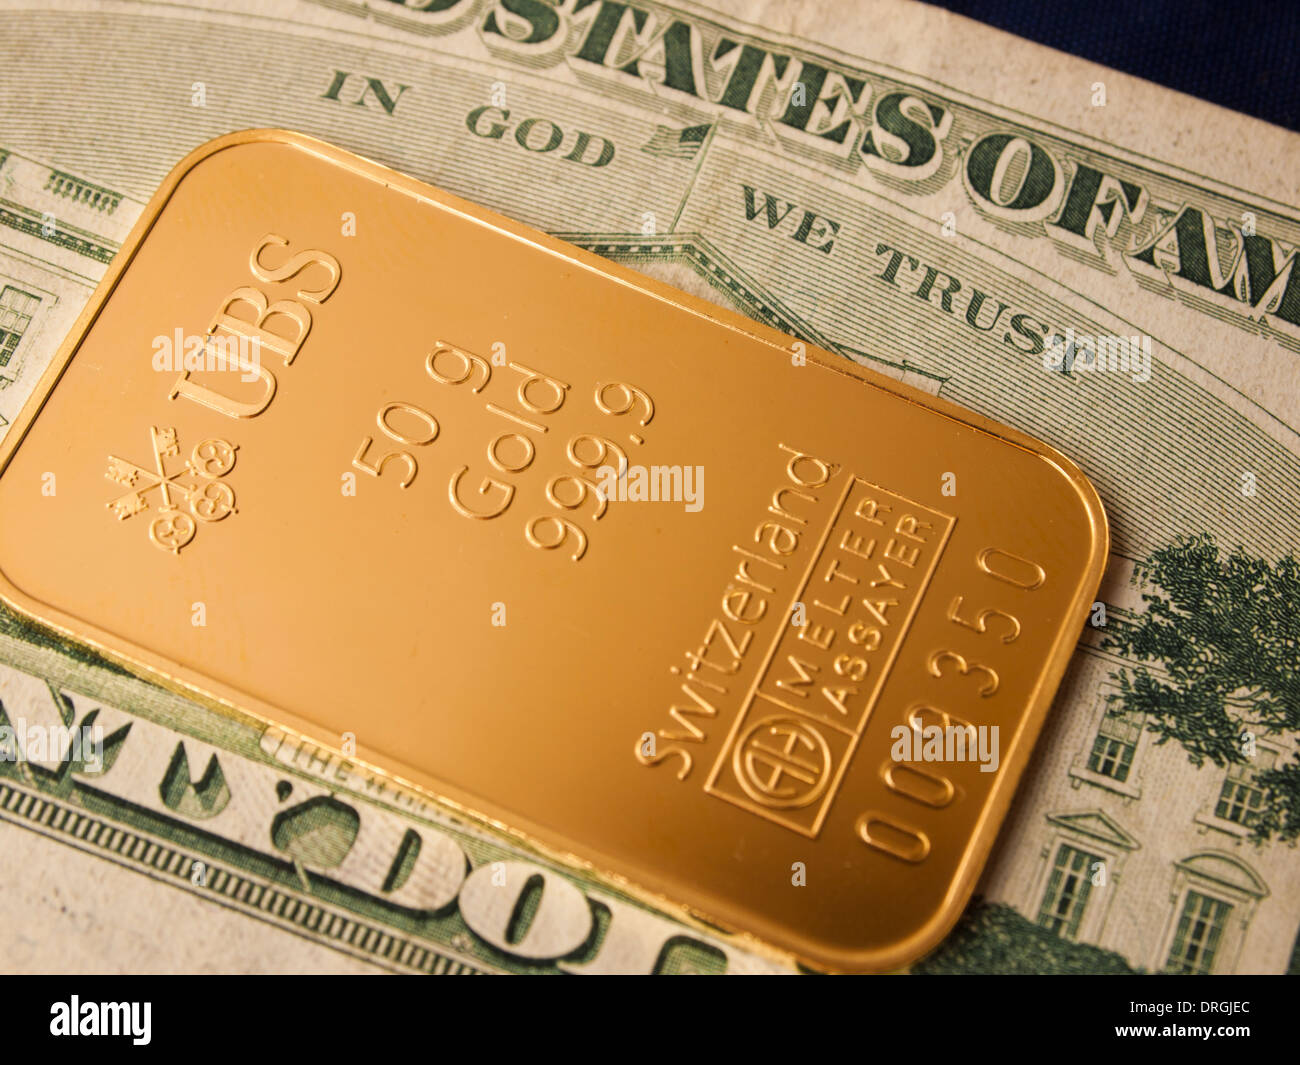 A 50g gold ingot issued by the swiss bank ubs on a us dollar note a 50g gold ingot issued by the swiss bank ubs on a us dollar note buycottarizona Image collections